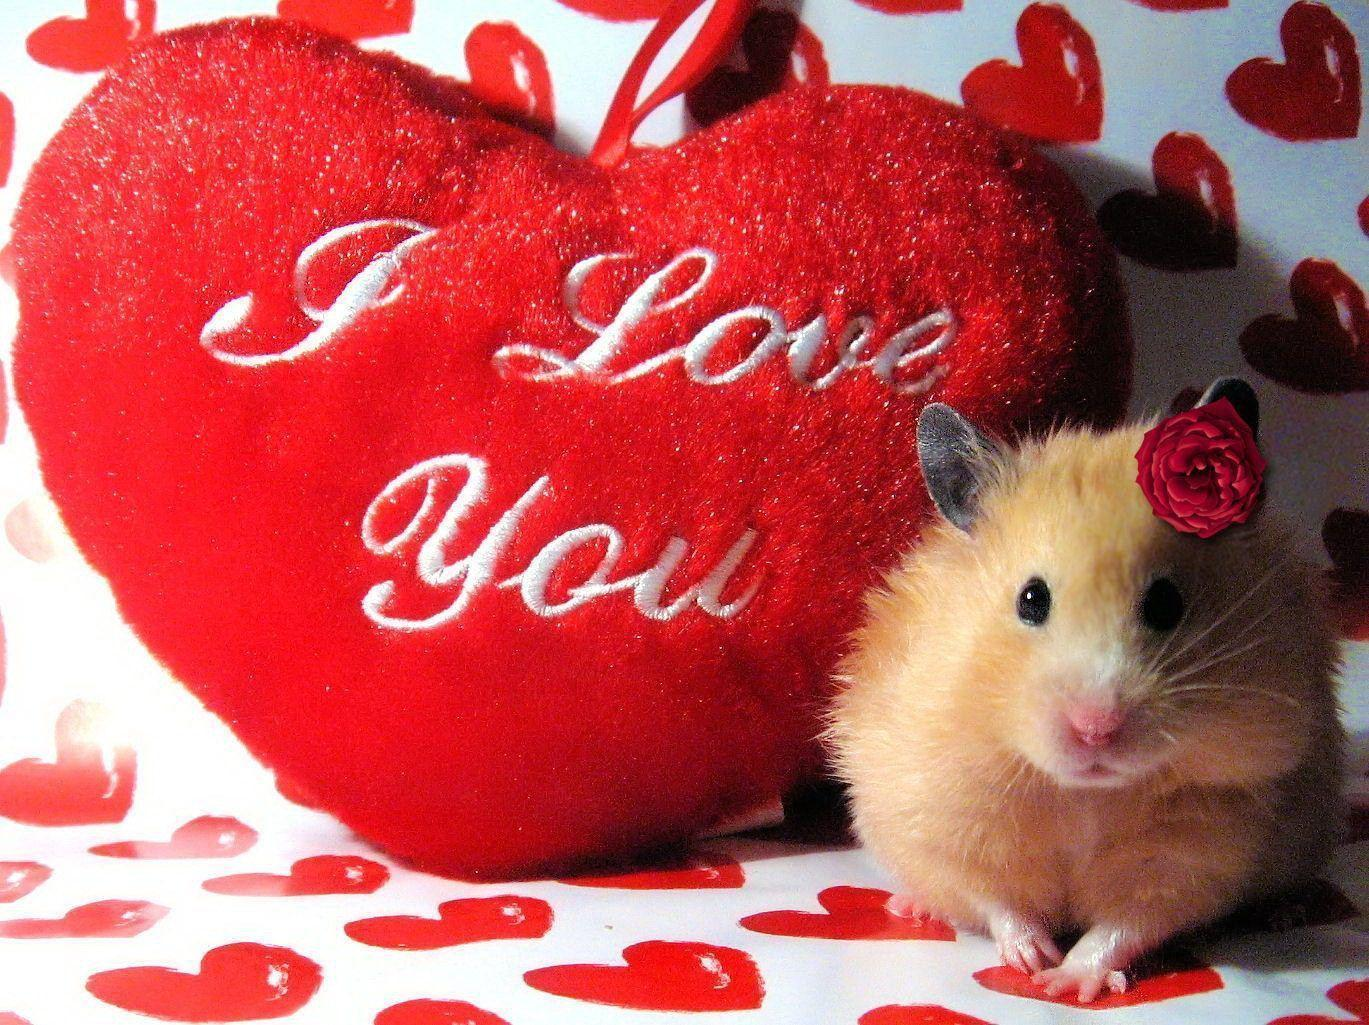 Hd wallpaper i love you - 70 Love Wallpaper And Pictures For Valentine Day